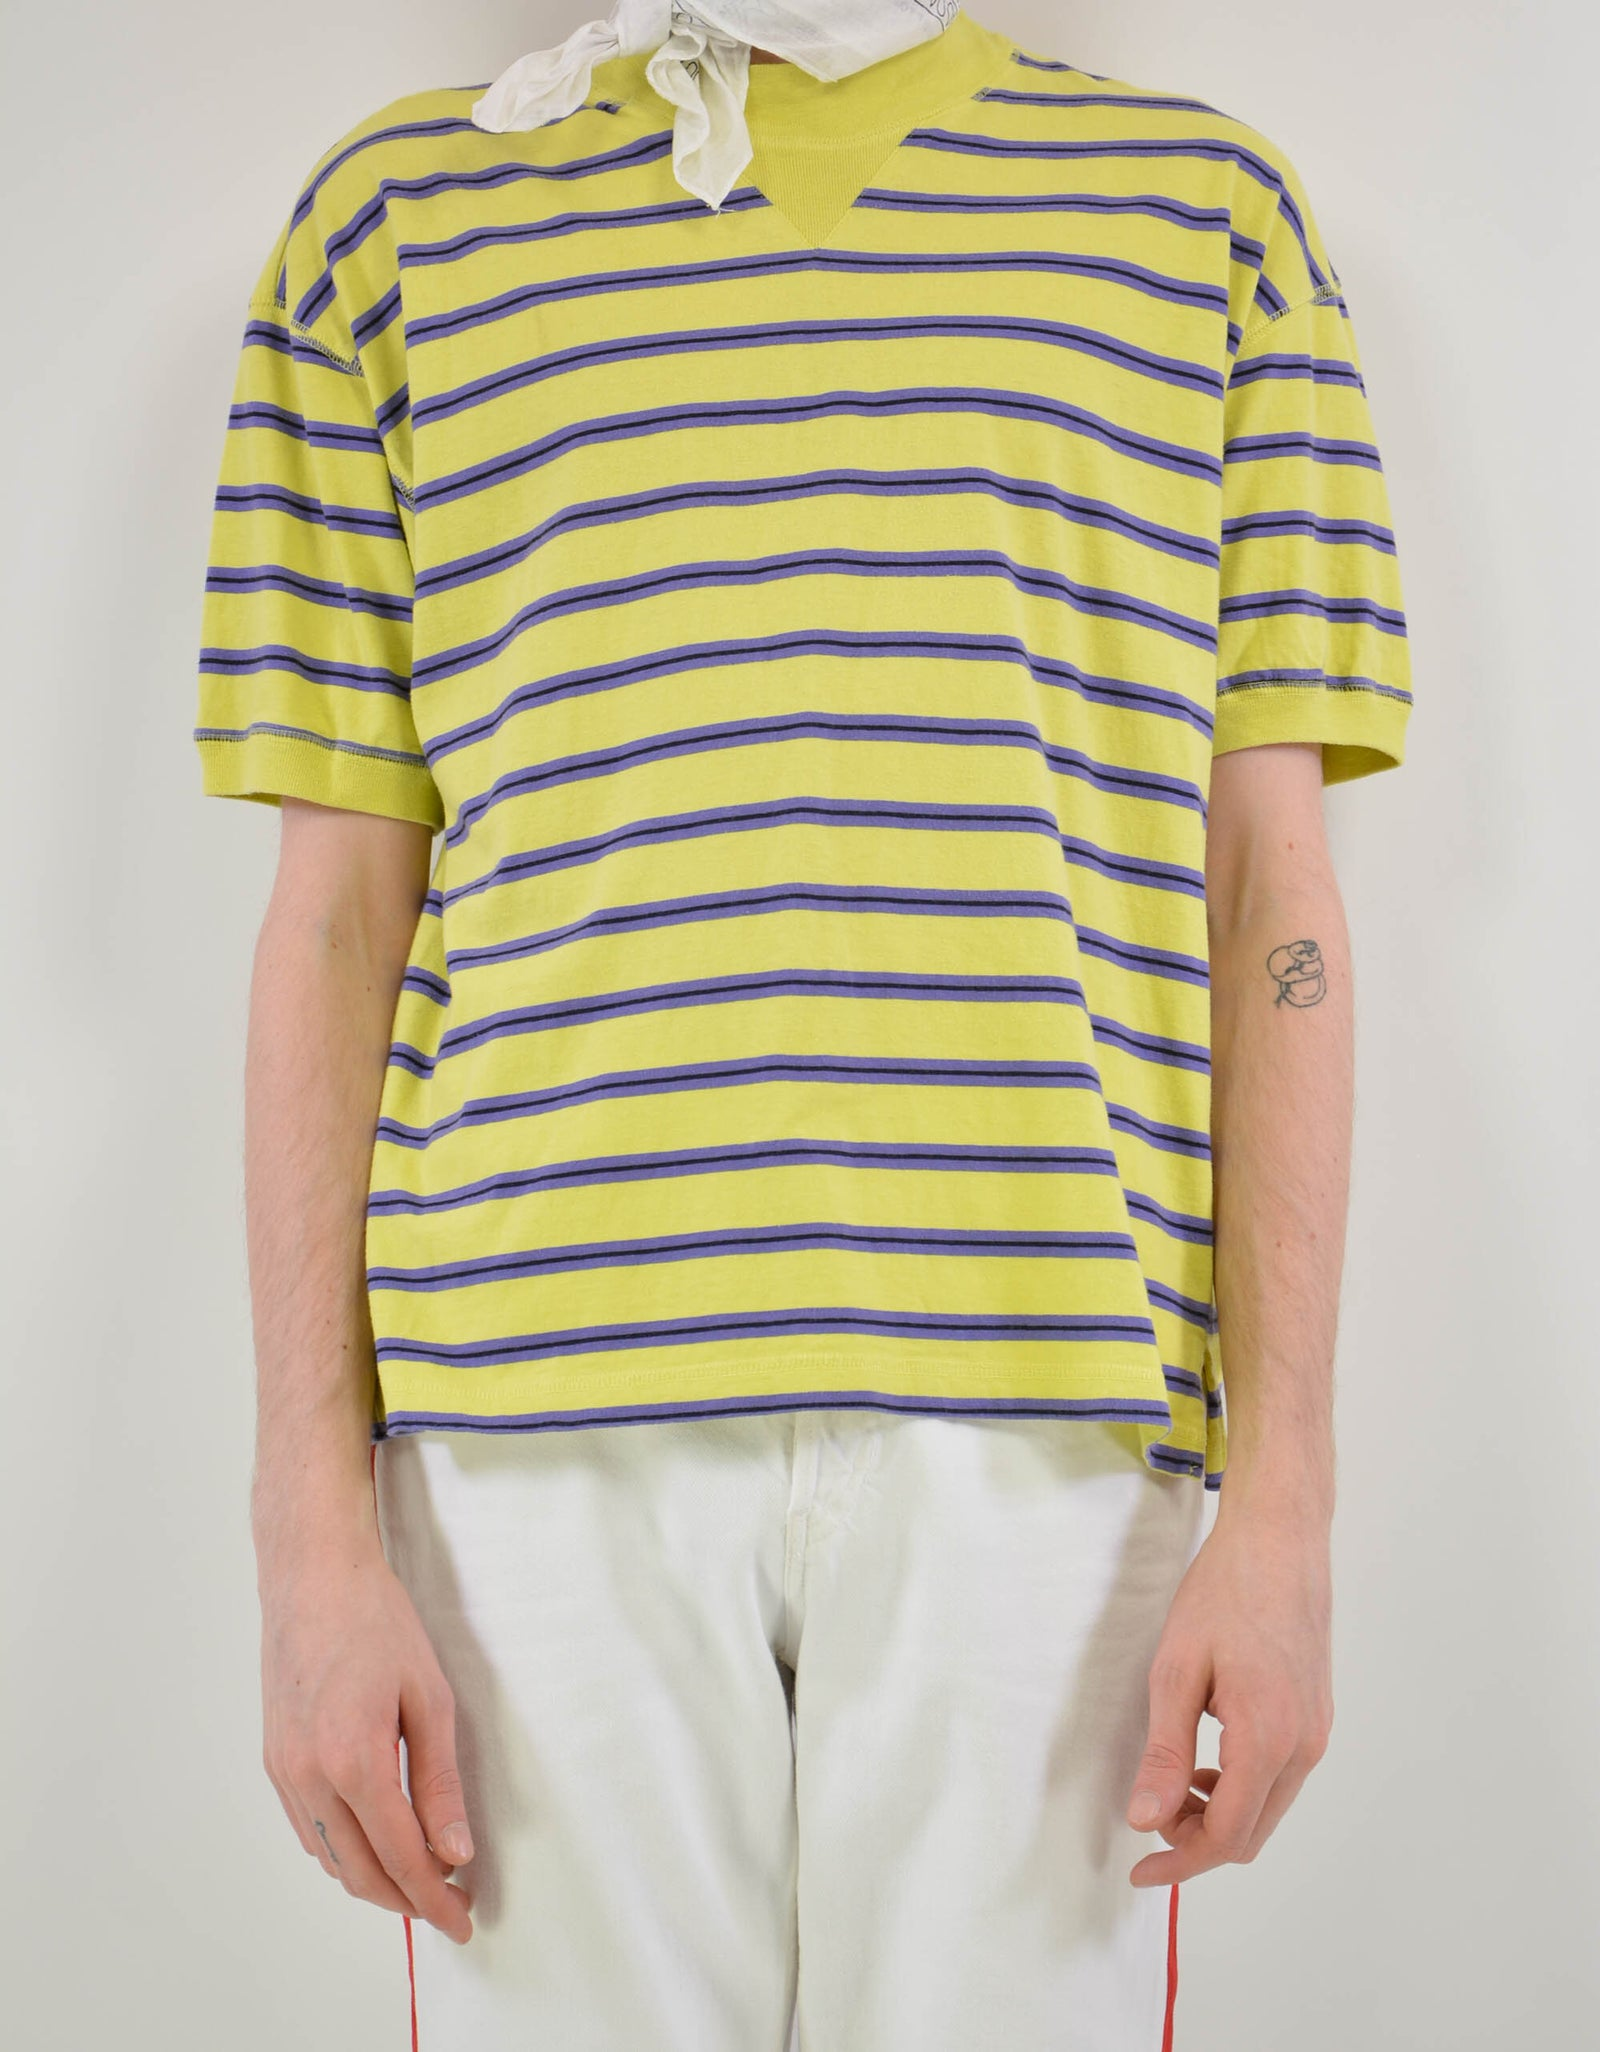 Striped tee - PICKNWEIGHT - VINTAGE KILO STORE